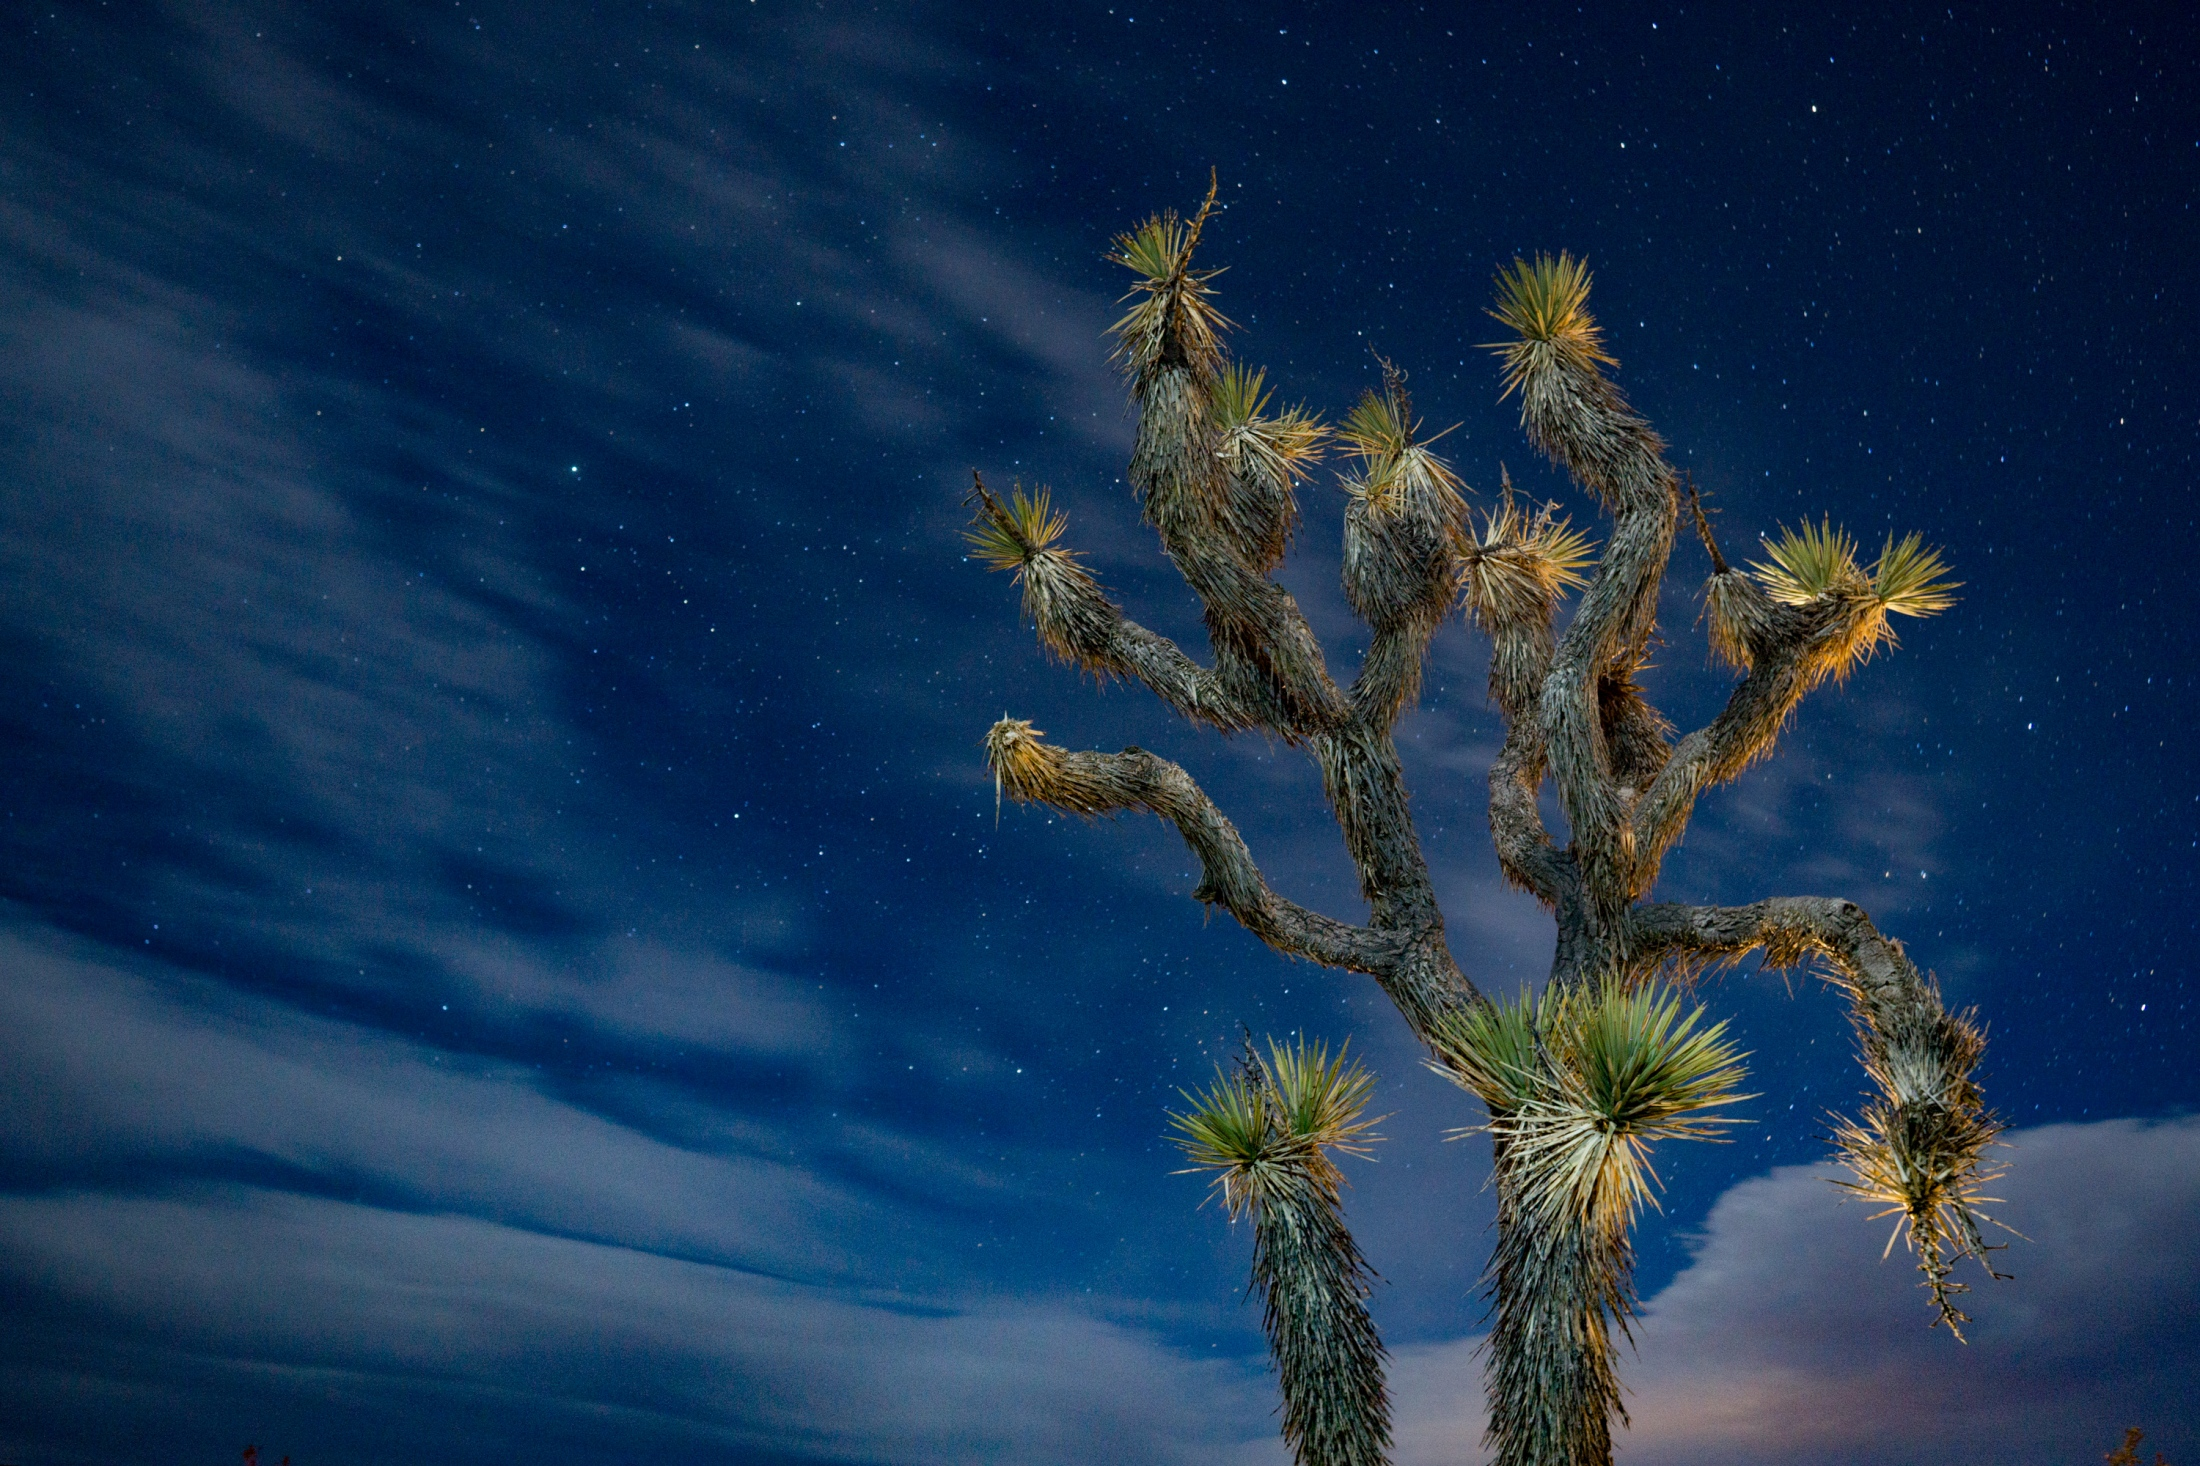 Joshua Tree Mojave Desert, California